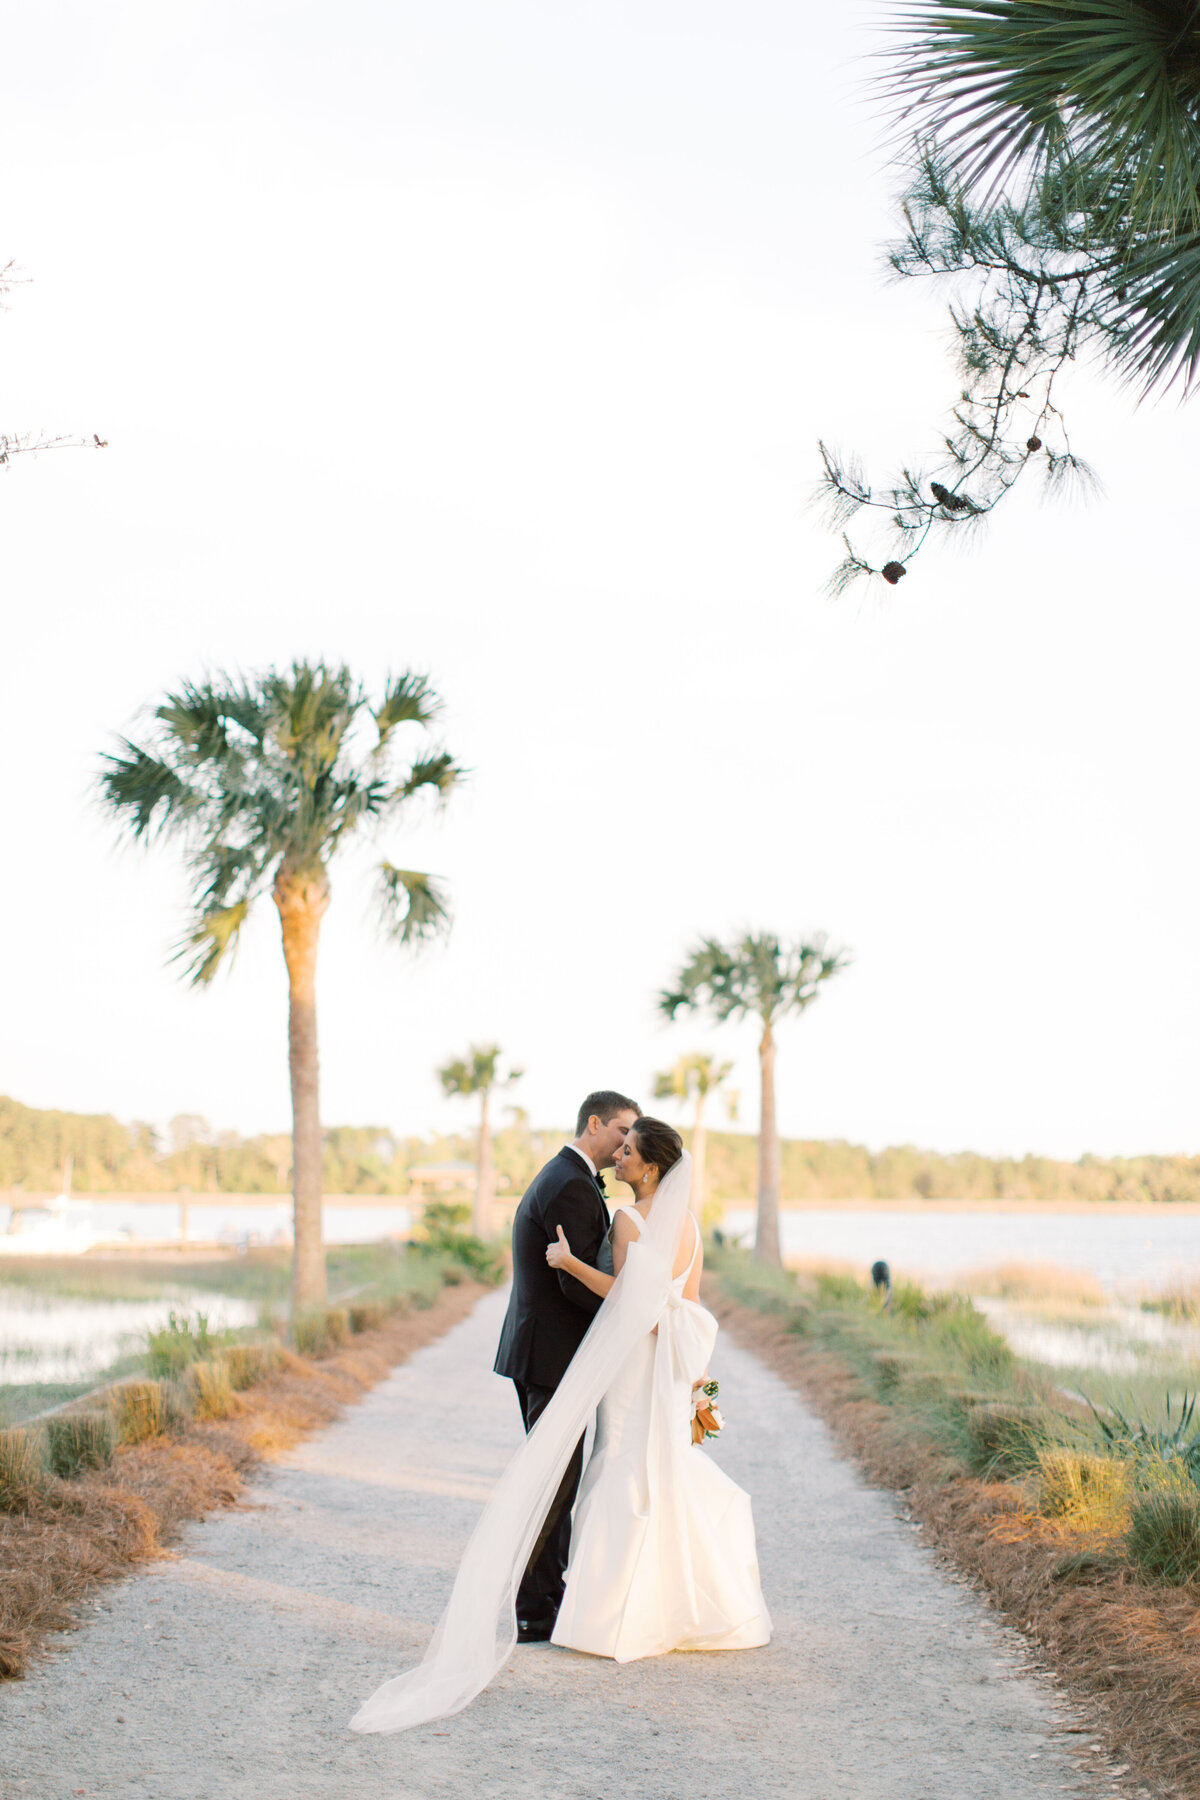 Powell_Oldfield_River_Club_Bluffton_South_Carolina_Beaufort_Savannah_Wedding_Jacksonville_Florida_Devon_Donnahoo_Photography_0919